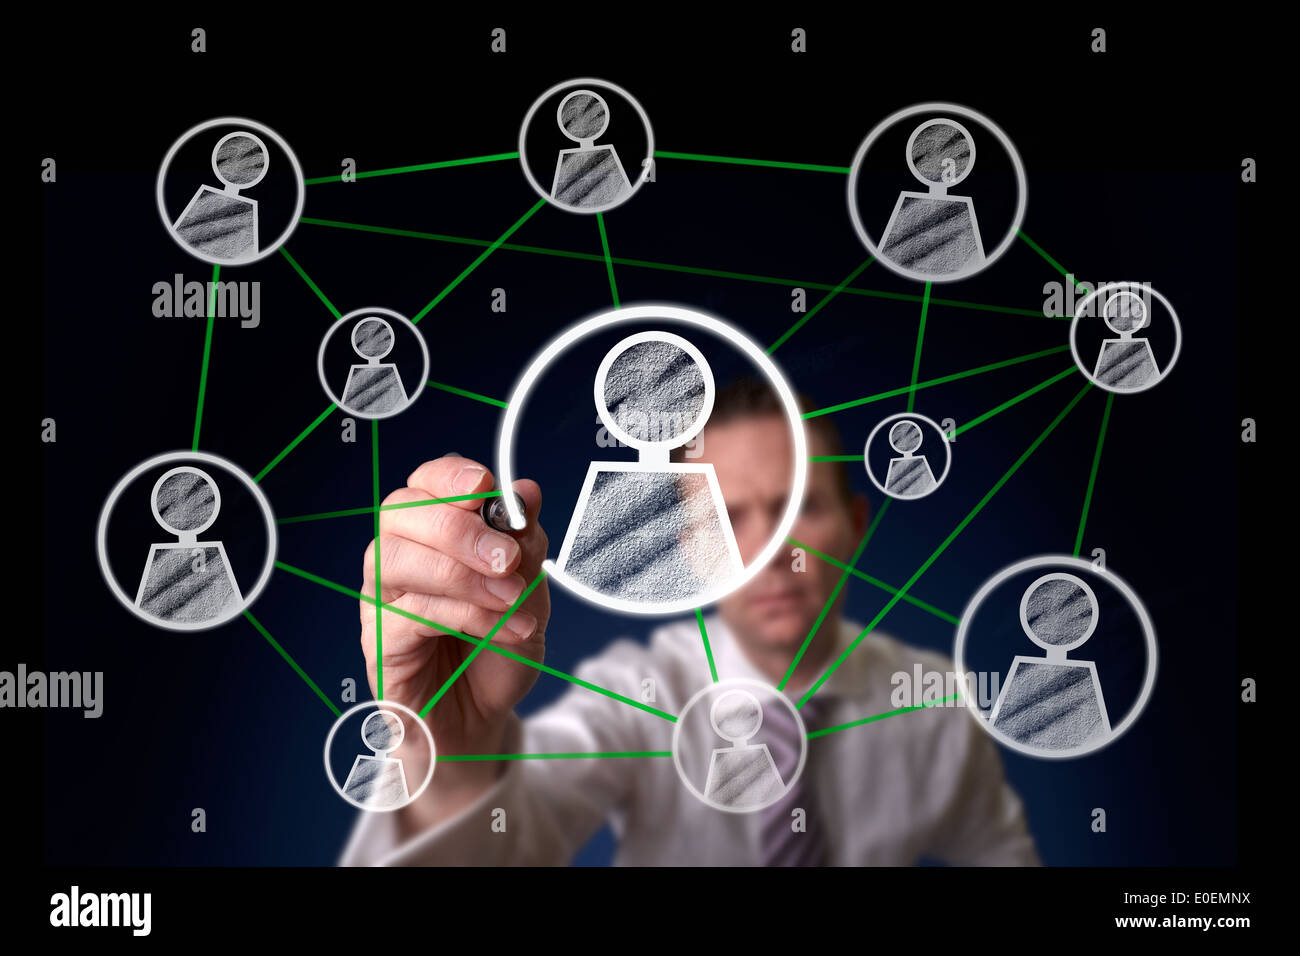 A man drawing a social network structure on a screen. - Stock Image